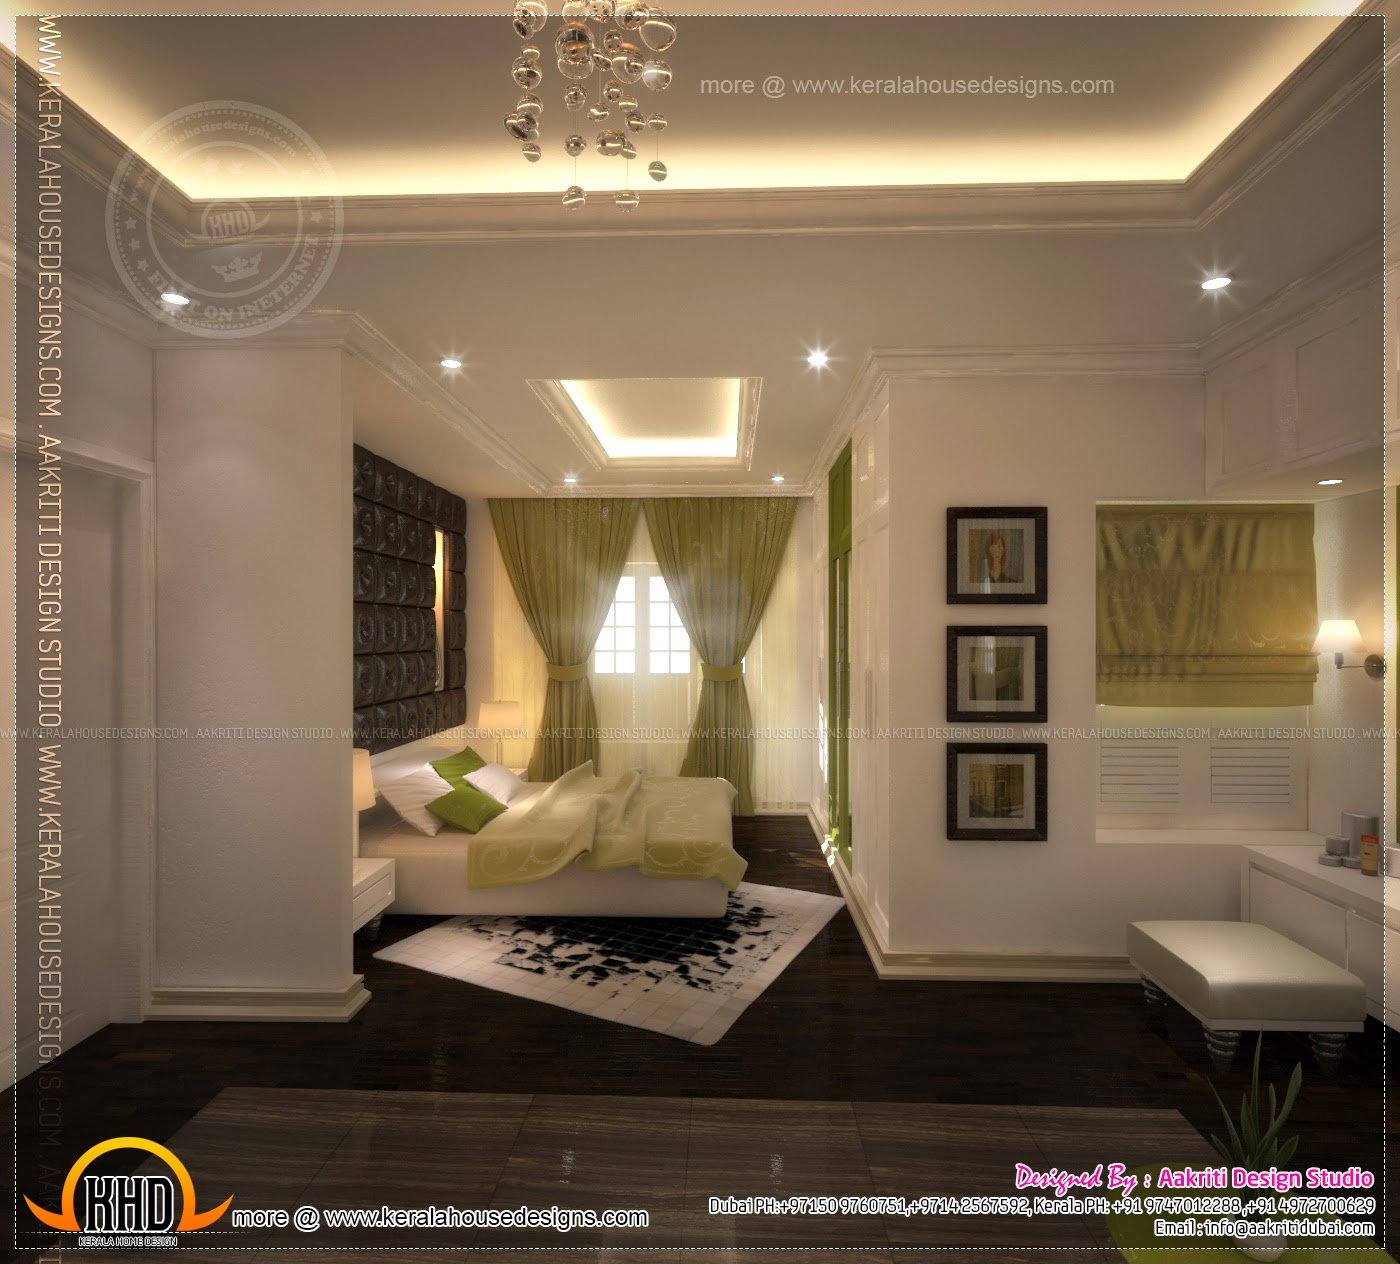 Master bedroom and bathroom interior design - Kerala home ...